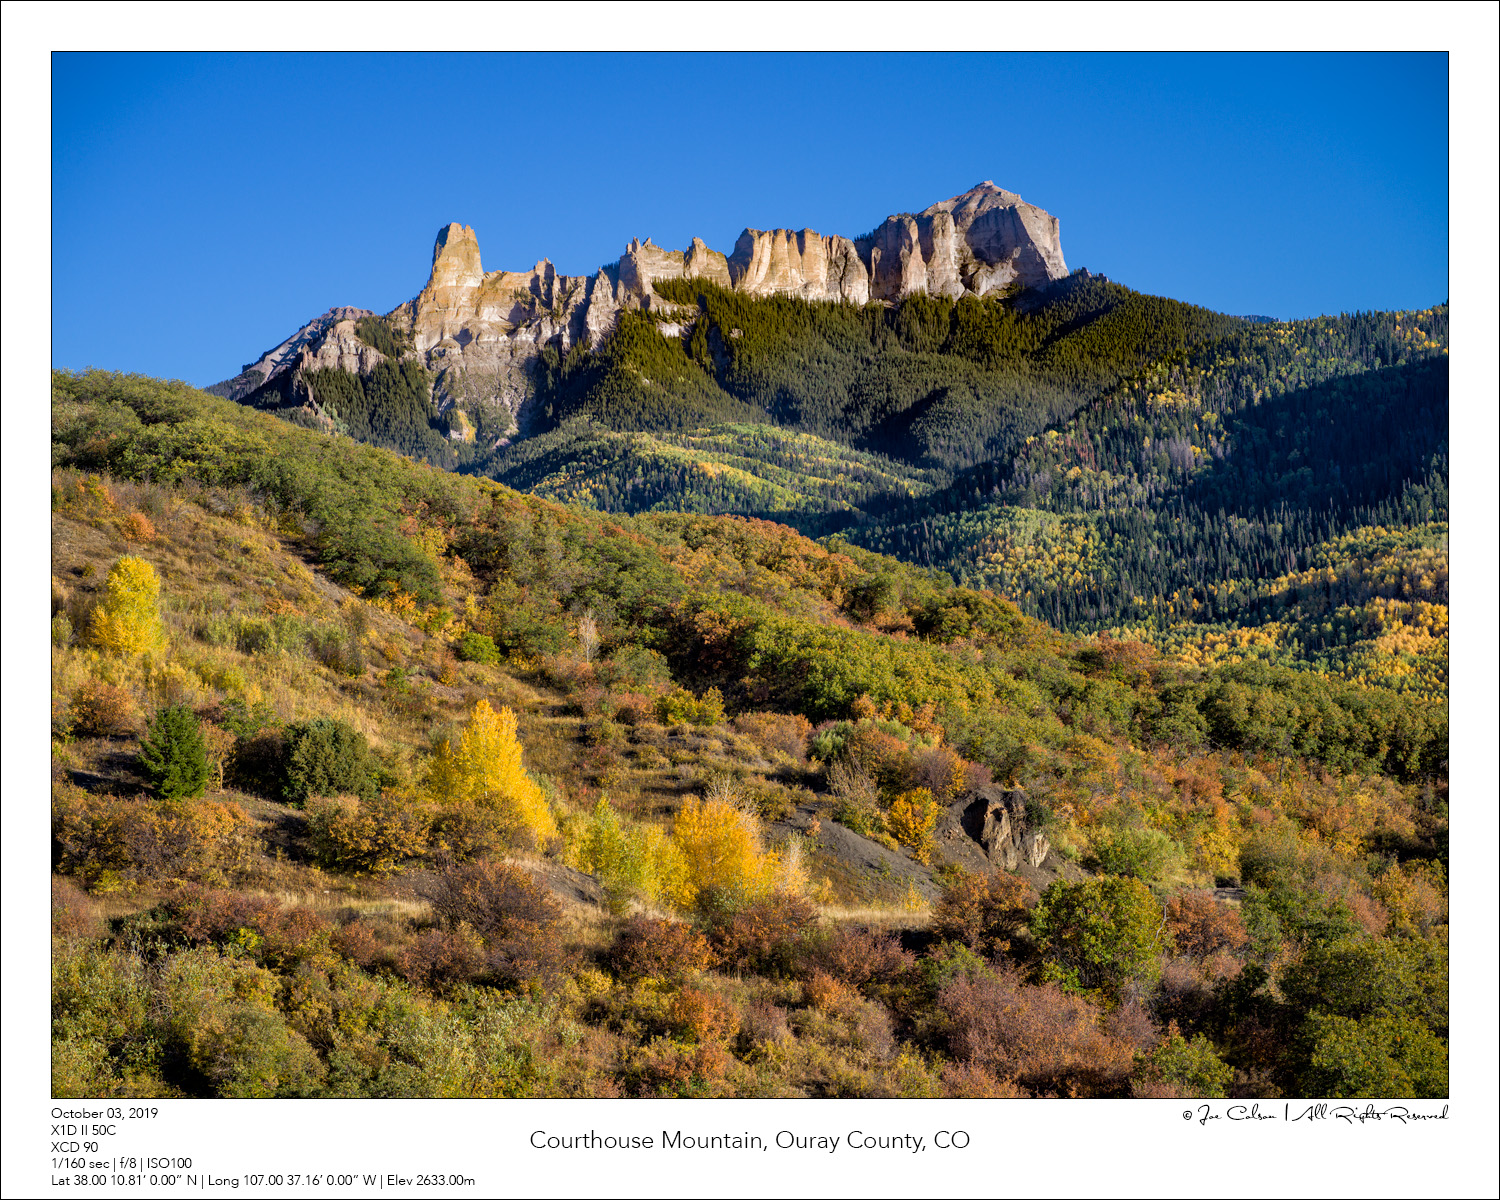 Courthouse Mountain, Ouray County, CO